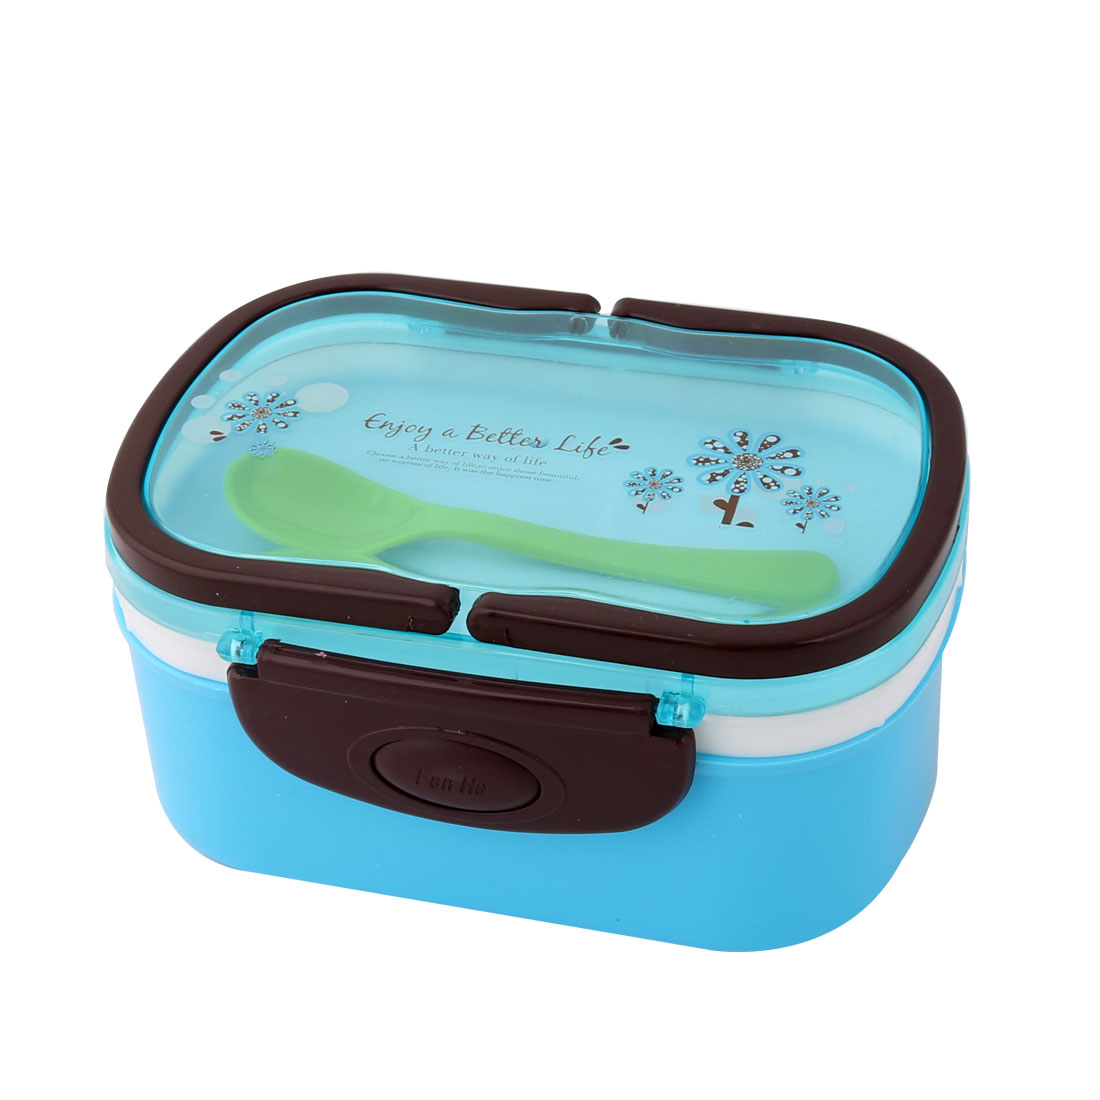 Household Outdoor Plastic Flower Pattern Handle Food Container Lunch Box Blue